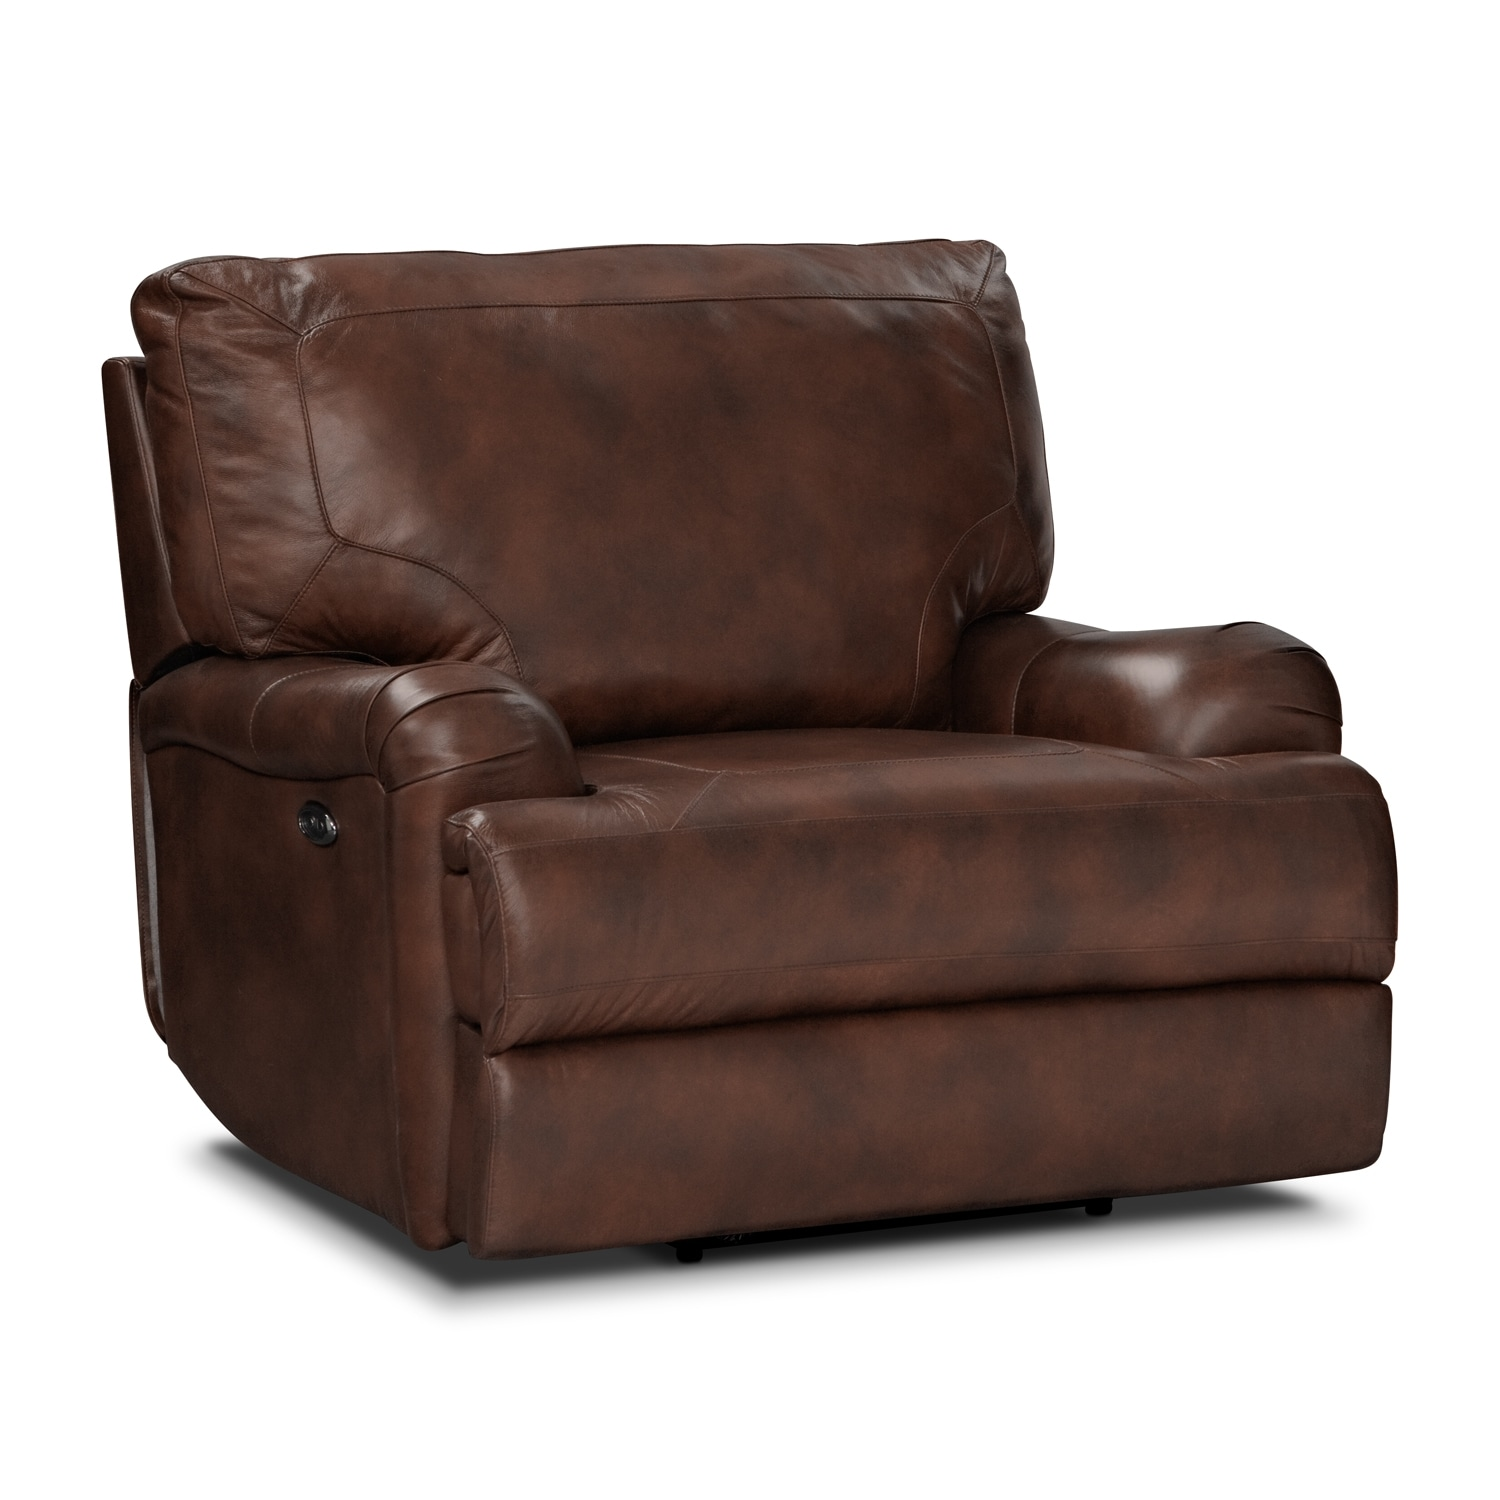 Kingsway Power Recliner Brown